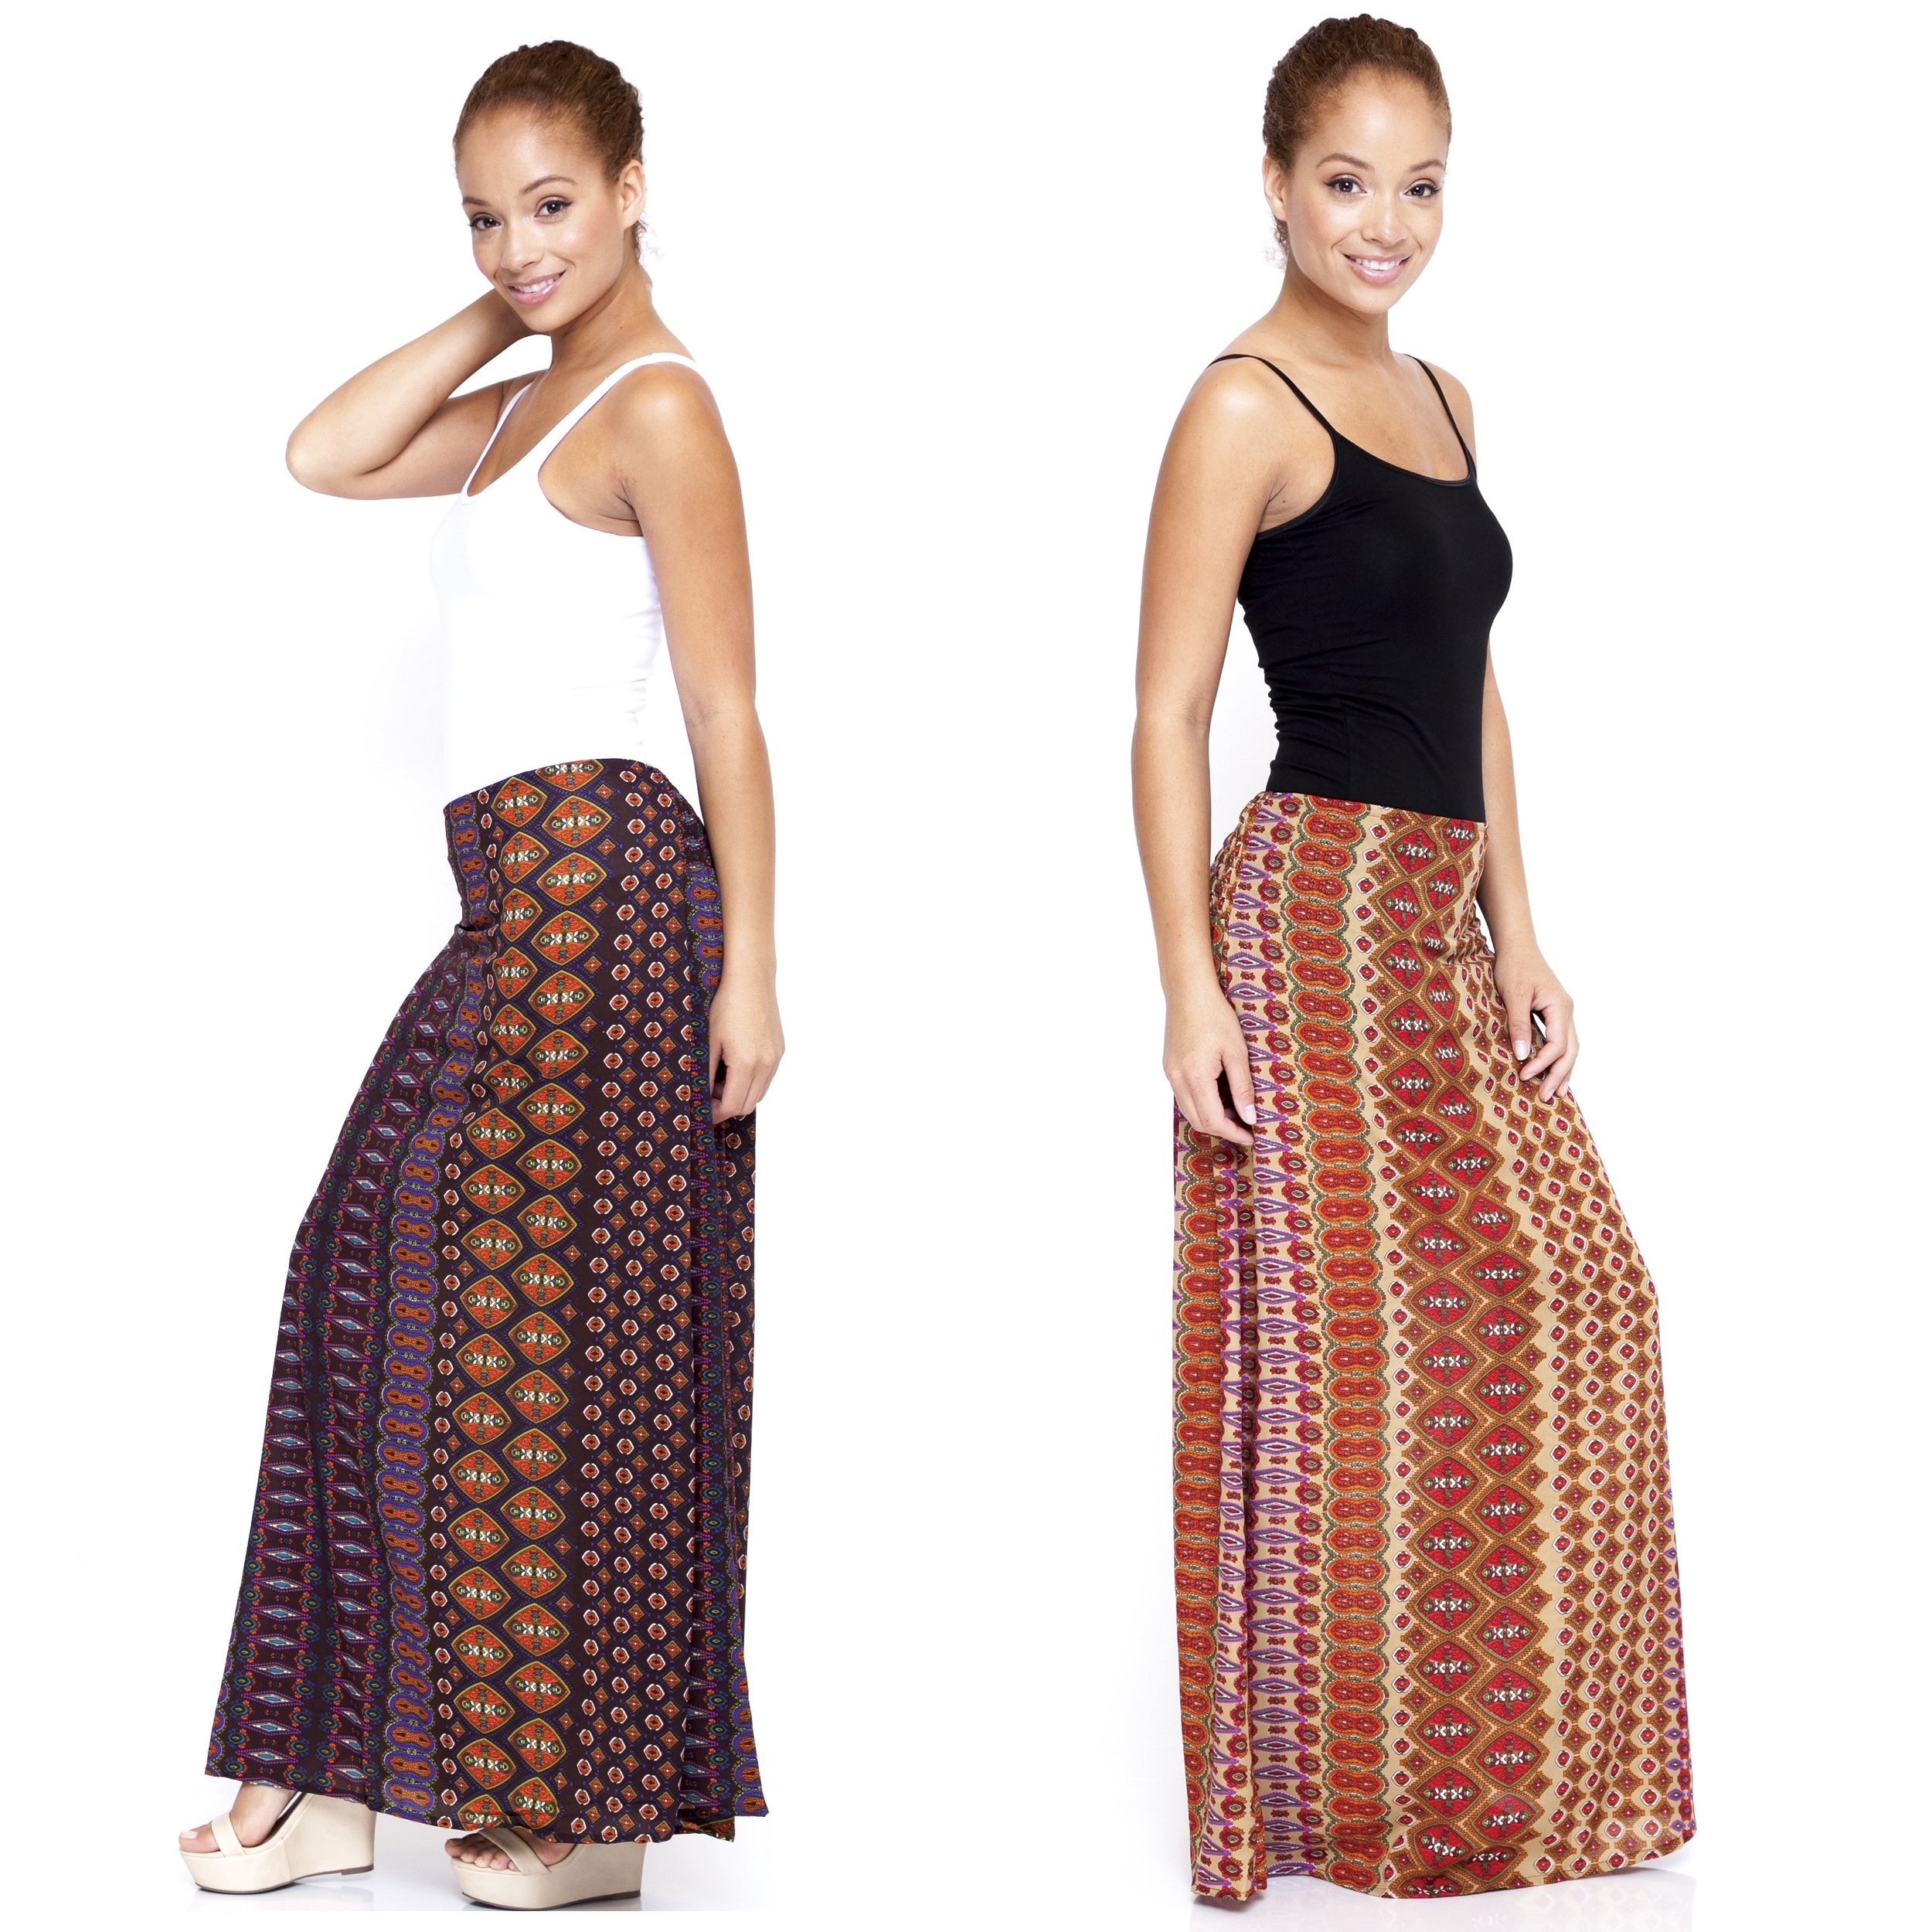 Women's Floral Printed Long Skirt (India)